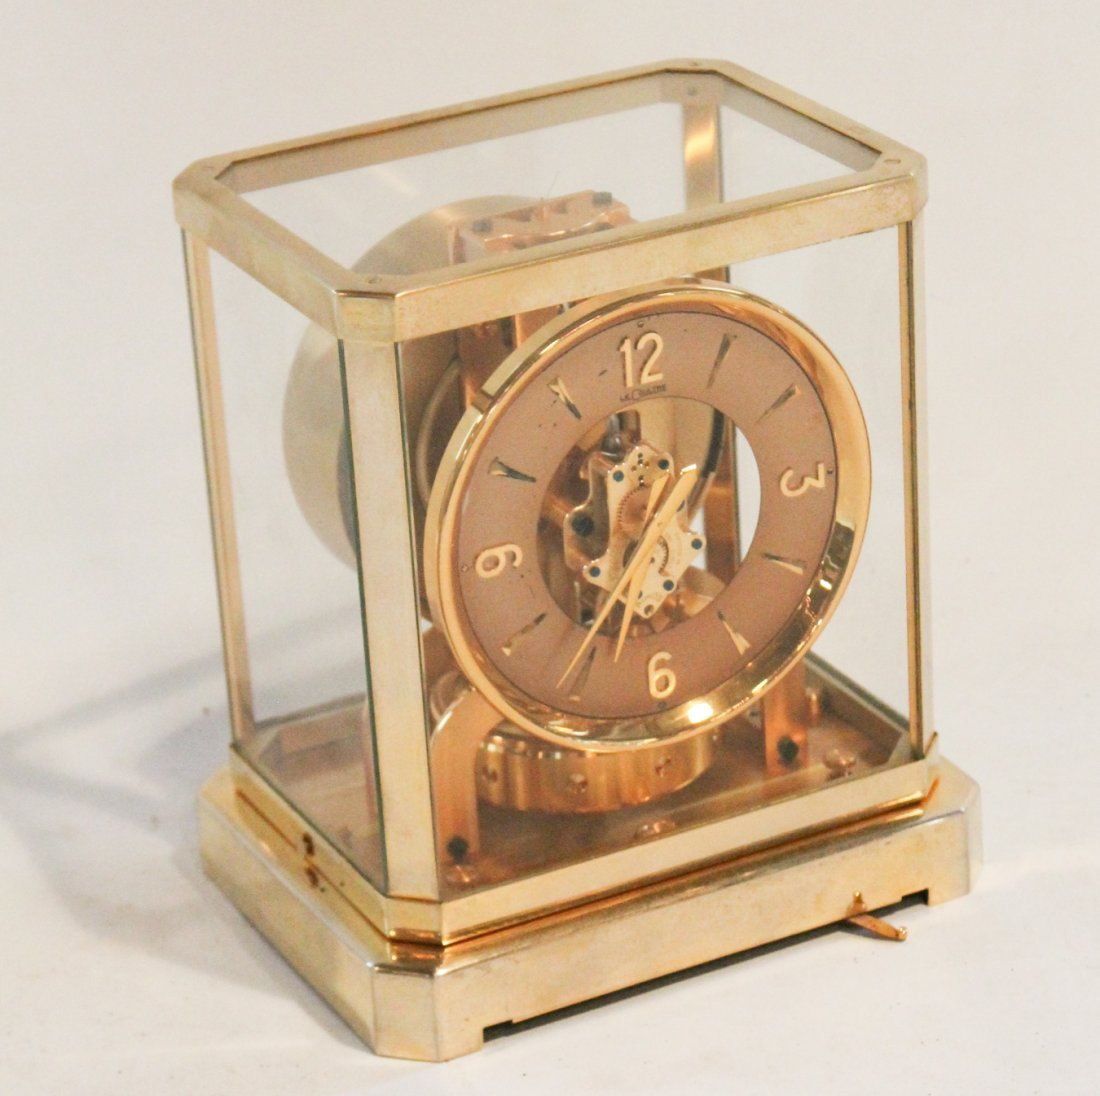 Le Coultre Atmos Mantel Clock